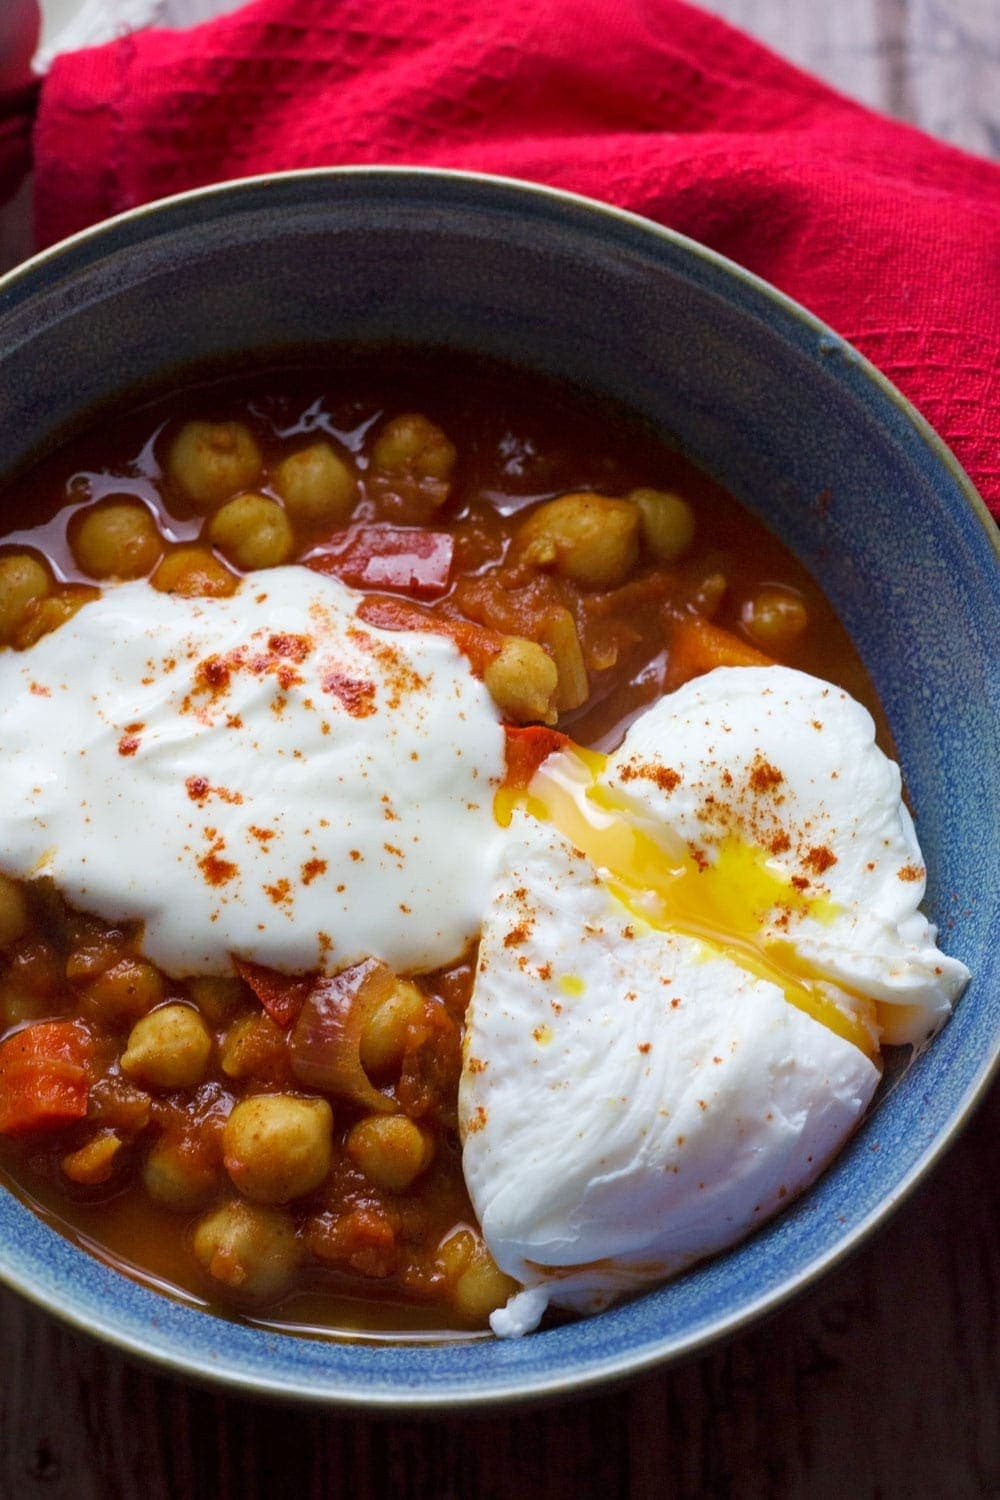 Chickpea polenta bowls with an egg